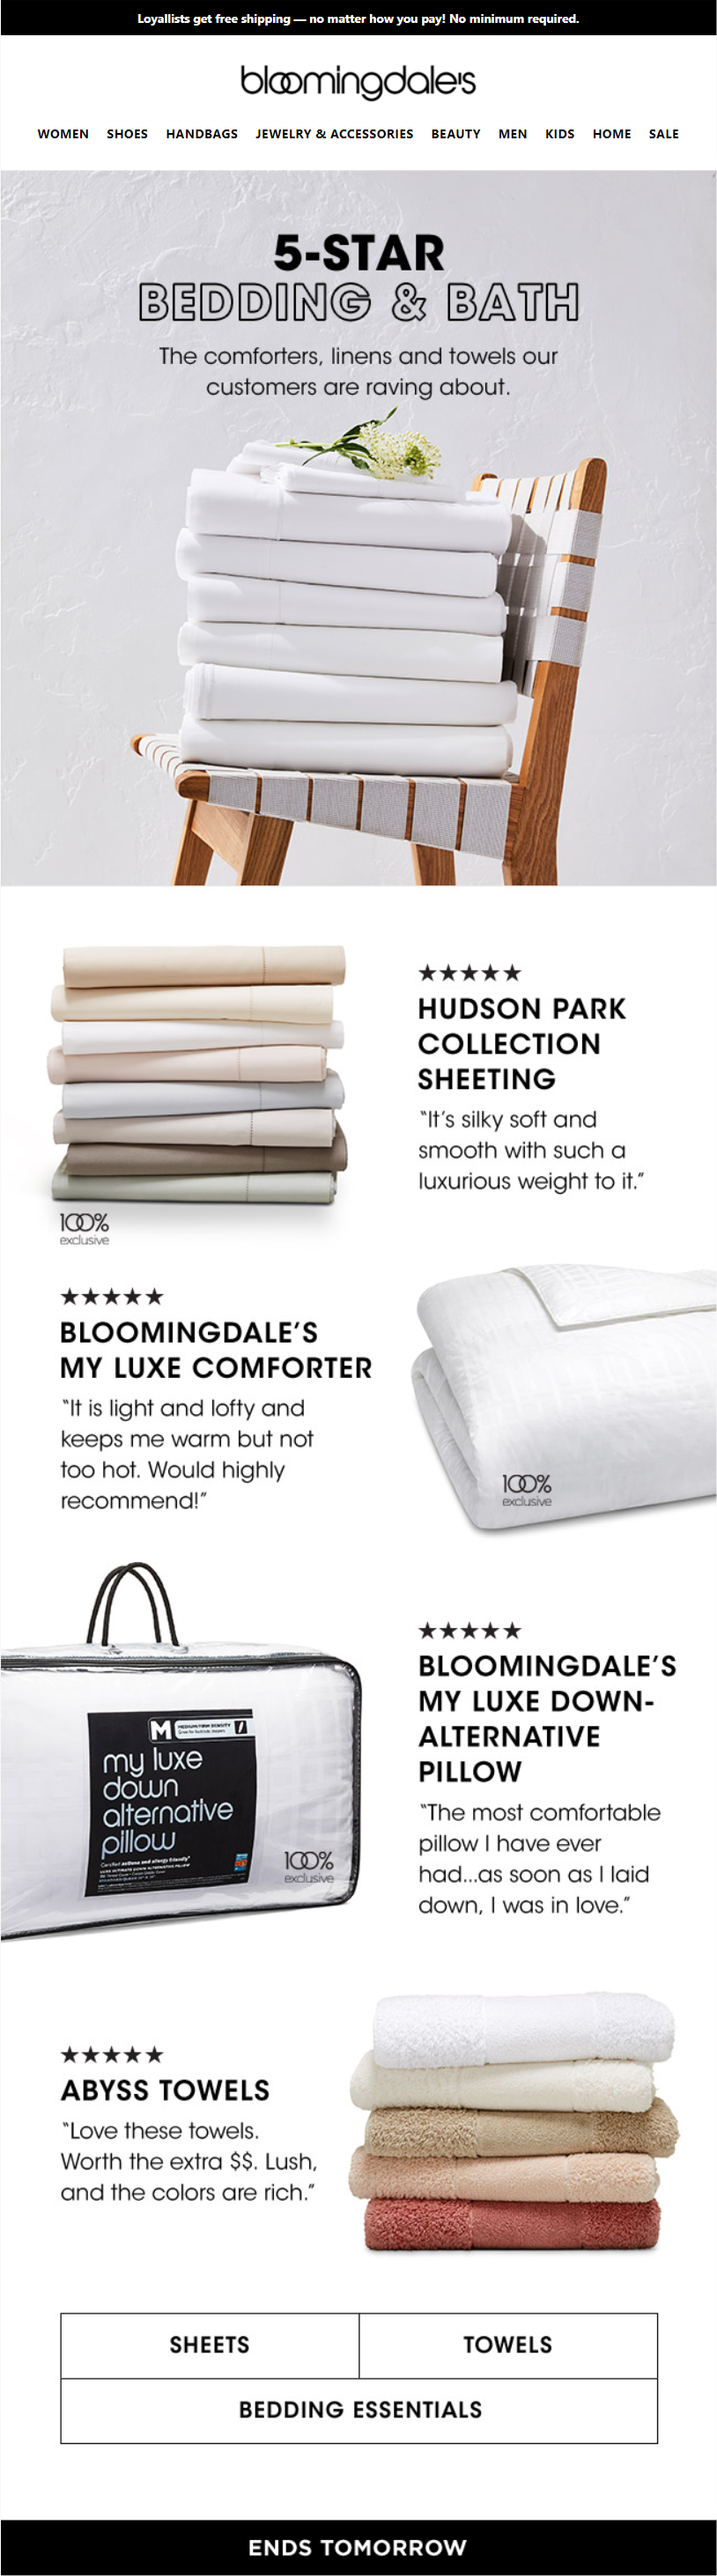 bloomingdales-uk-the-bedding-our-customers-are-obsessed-with